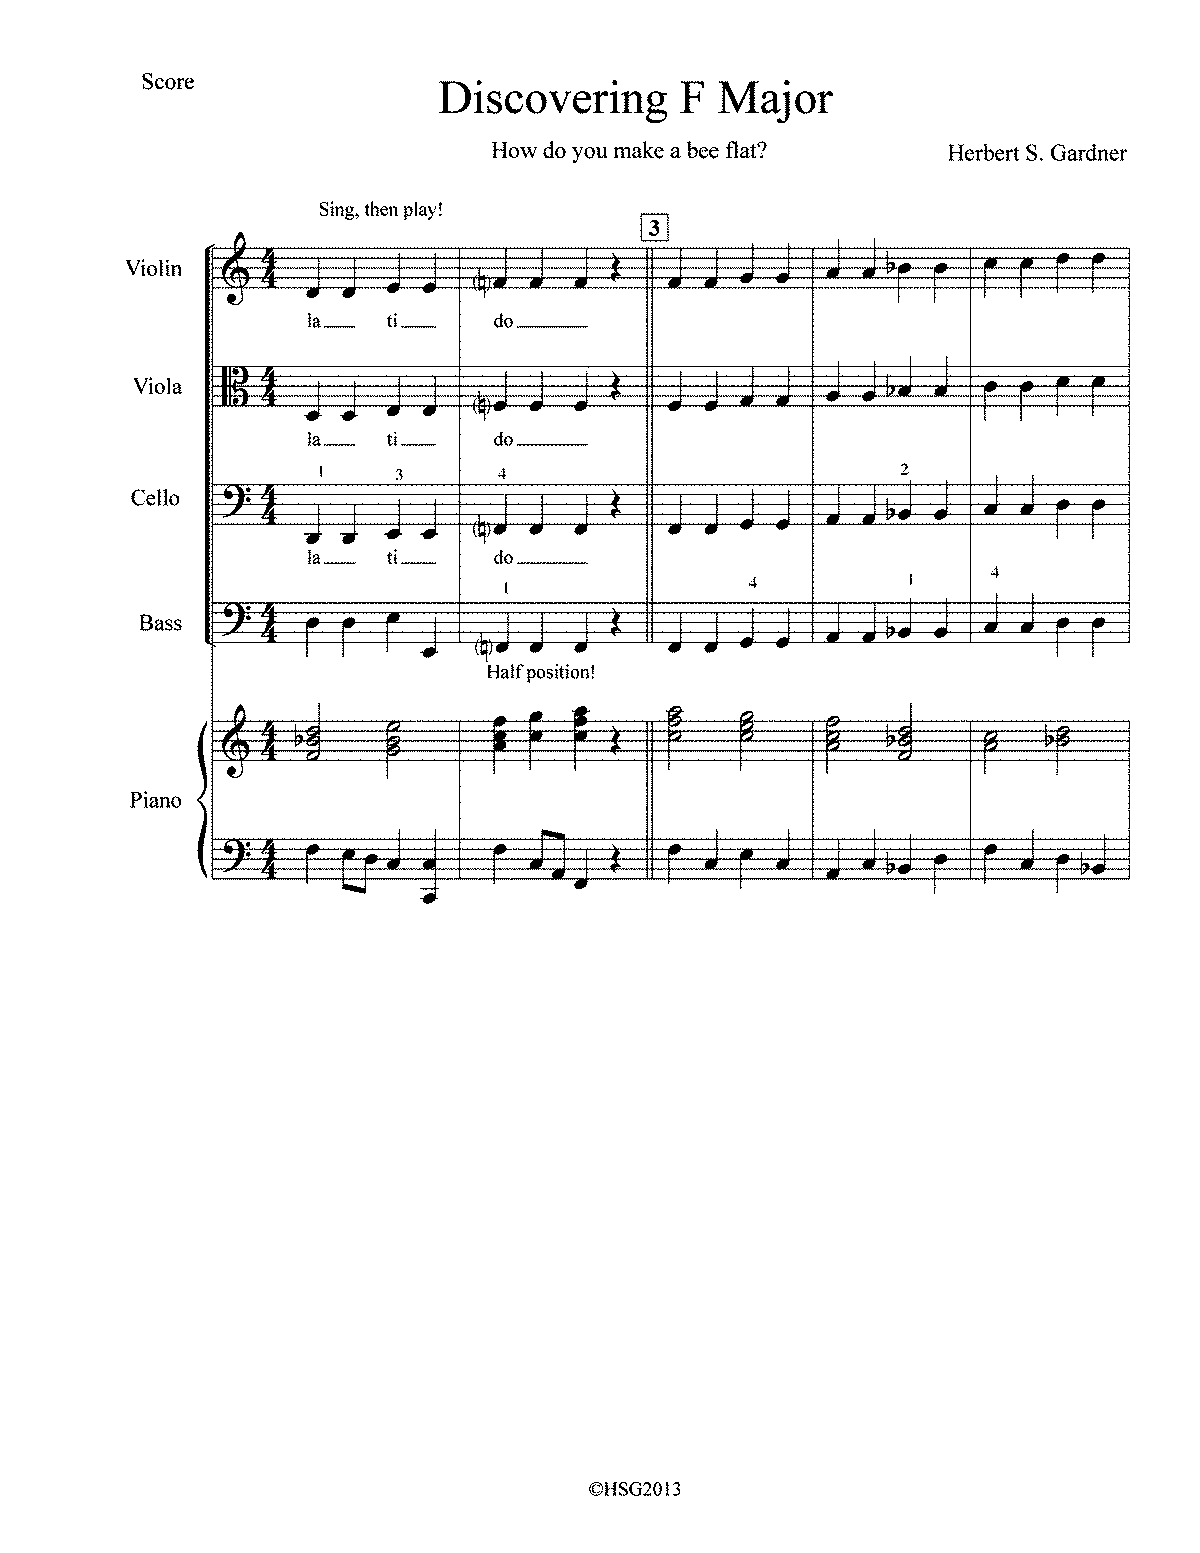 PMLP567181-Discovering F Major score.pdf